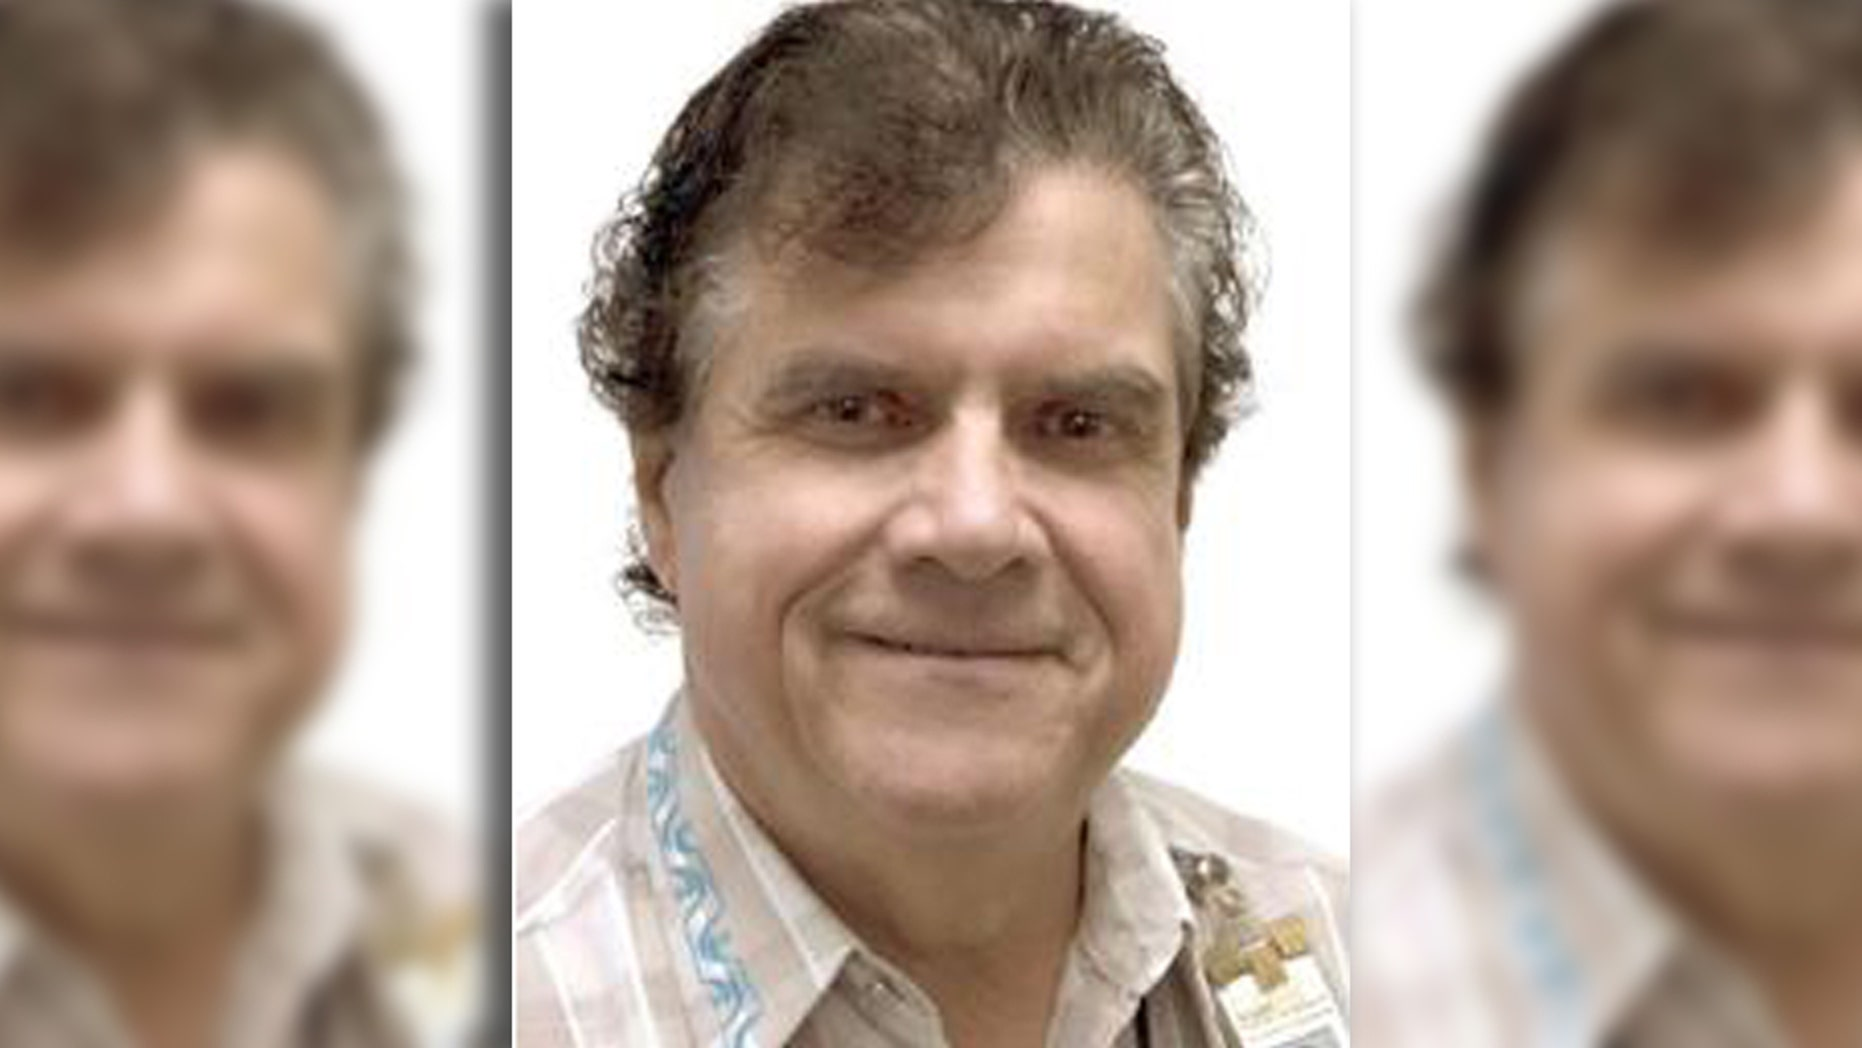 University of Southern California and Dr. George Tyndall, a gynecologist who worked at a USC clinic for 30 years, have been sued by four former students. Tyndall is accused of sexual battery and sexual harassment. (USC)